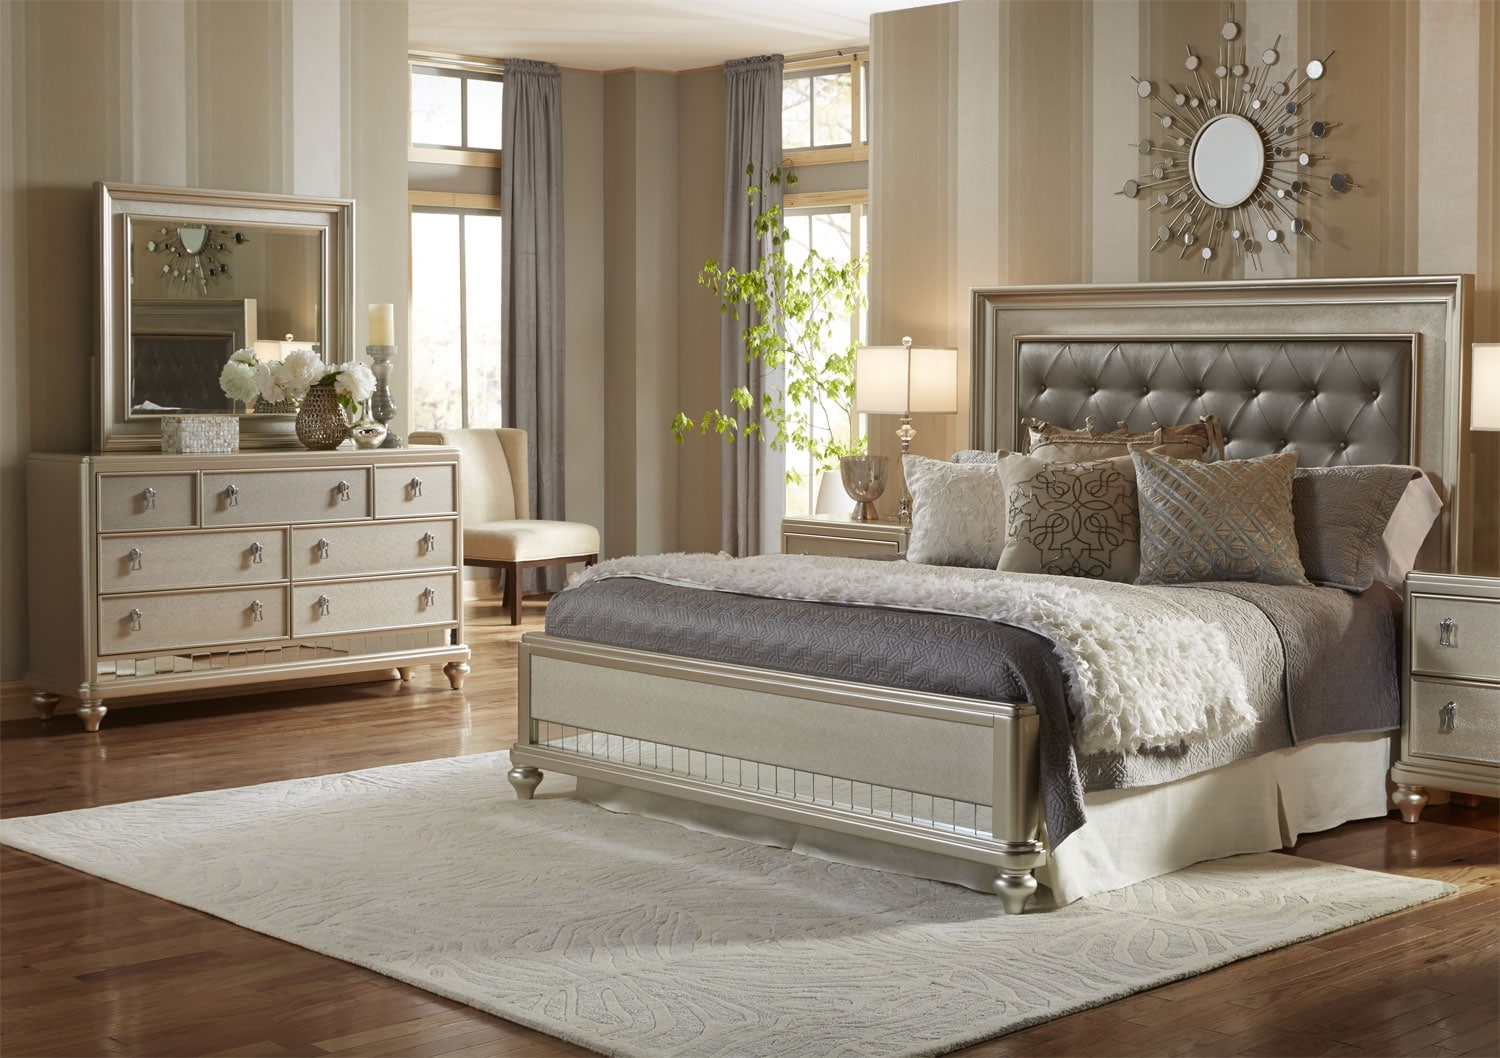 Diva 5 Piece Queen Bedroom Package The Brick